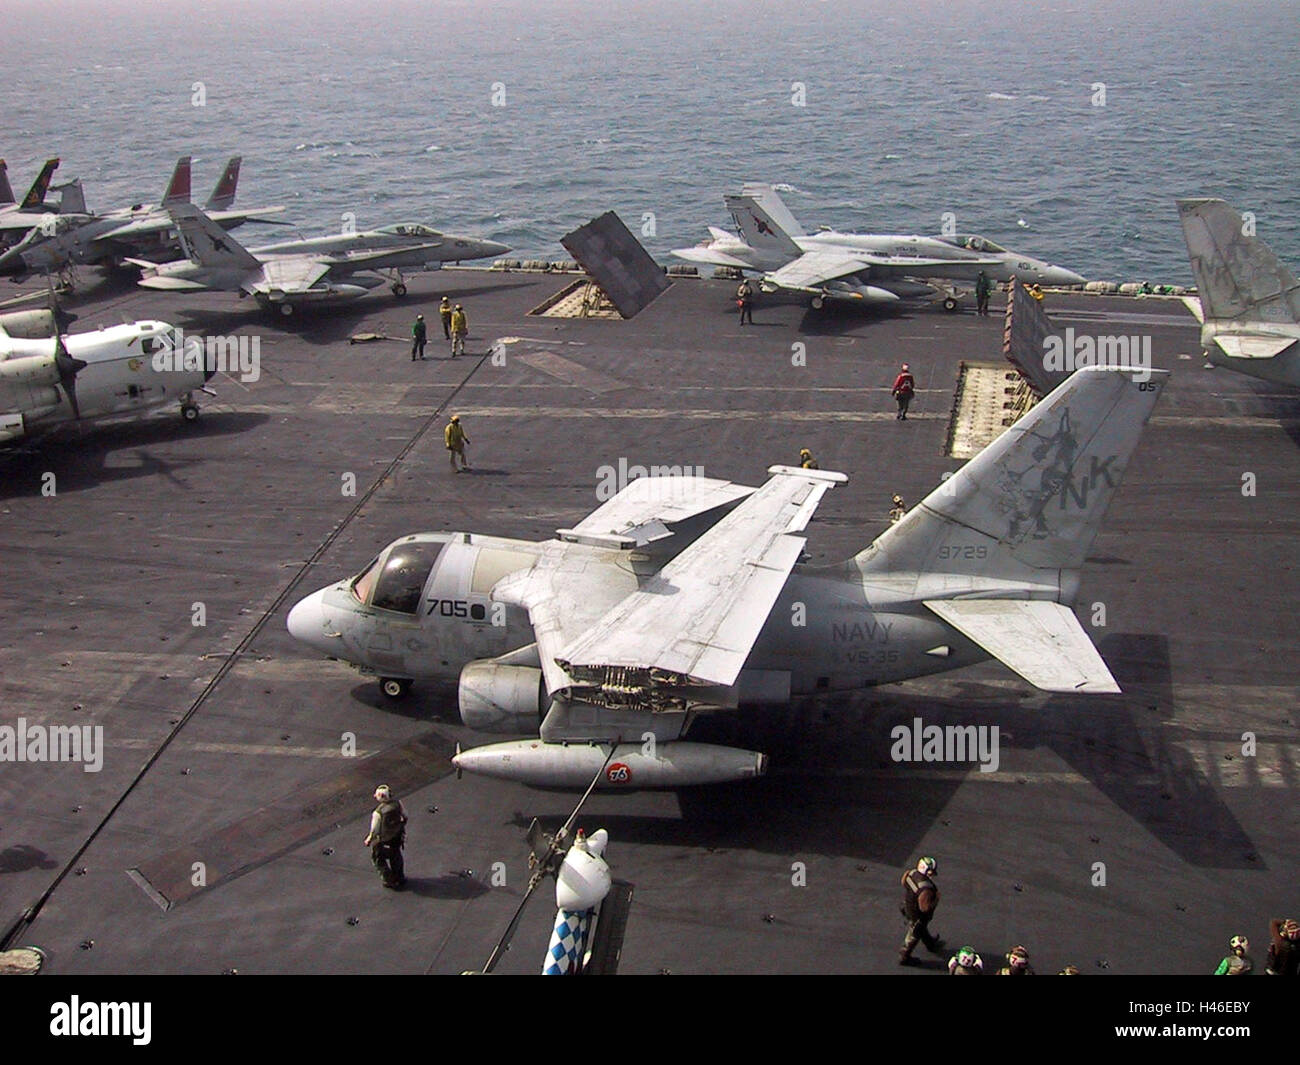 20th March 2003 Operation Iraqi Freedom: aircraft preparing for takeoff on the USS Abraham Lincoln in the Persian - Stock Image